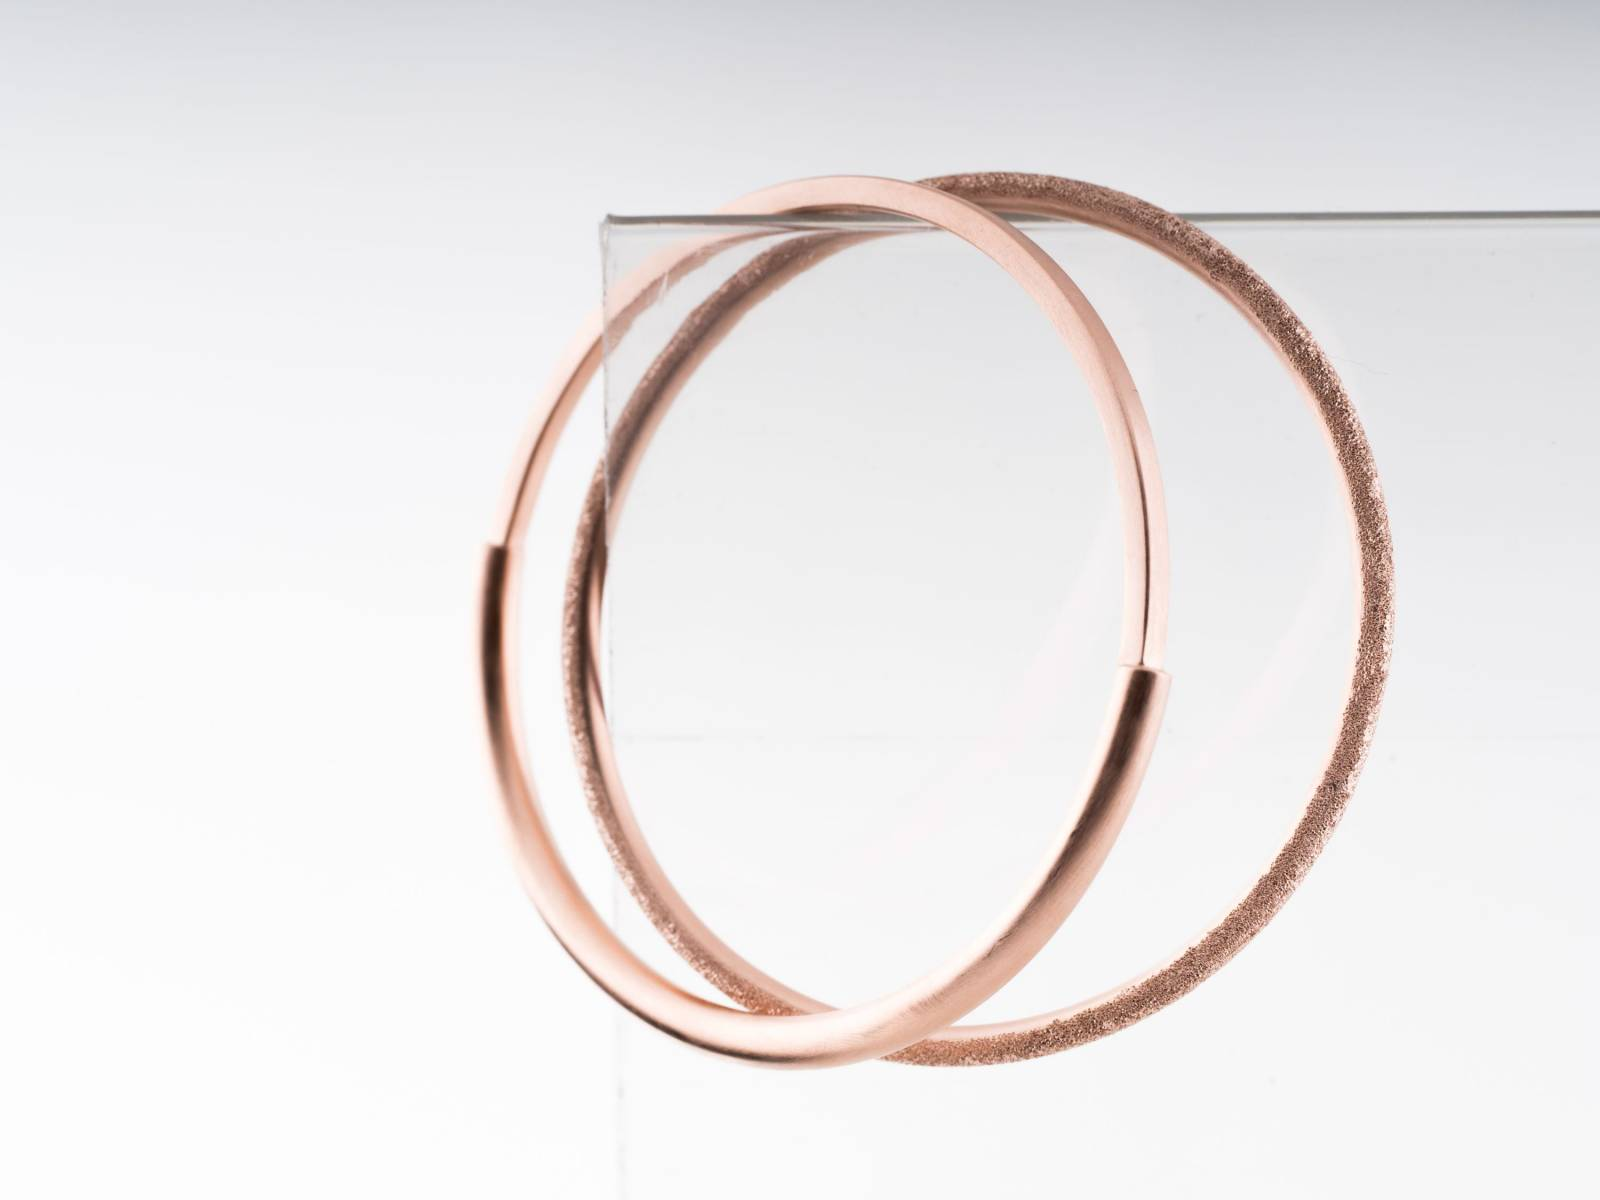 MOMENTS_nos nos armband - pink gold plated - €340